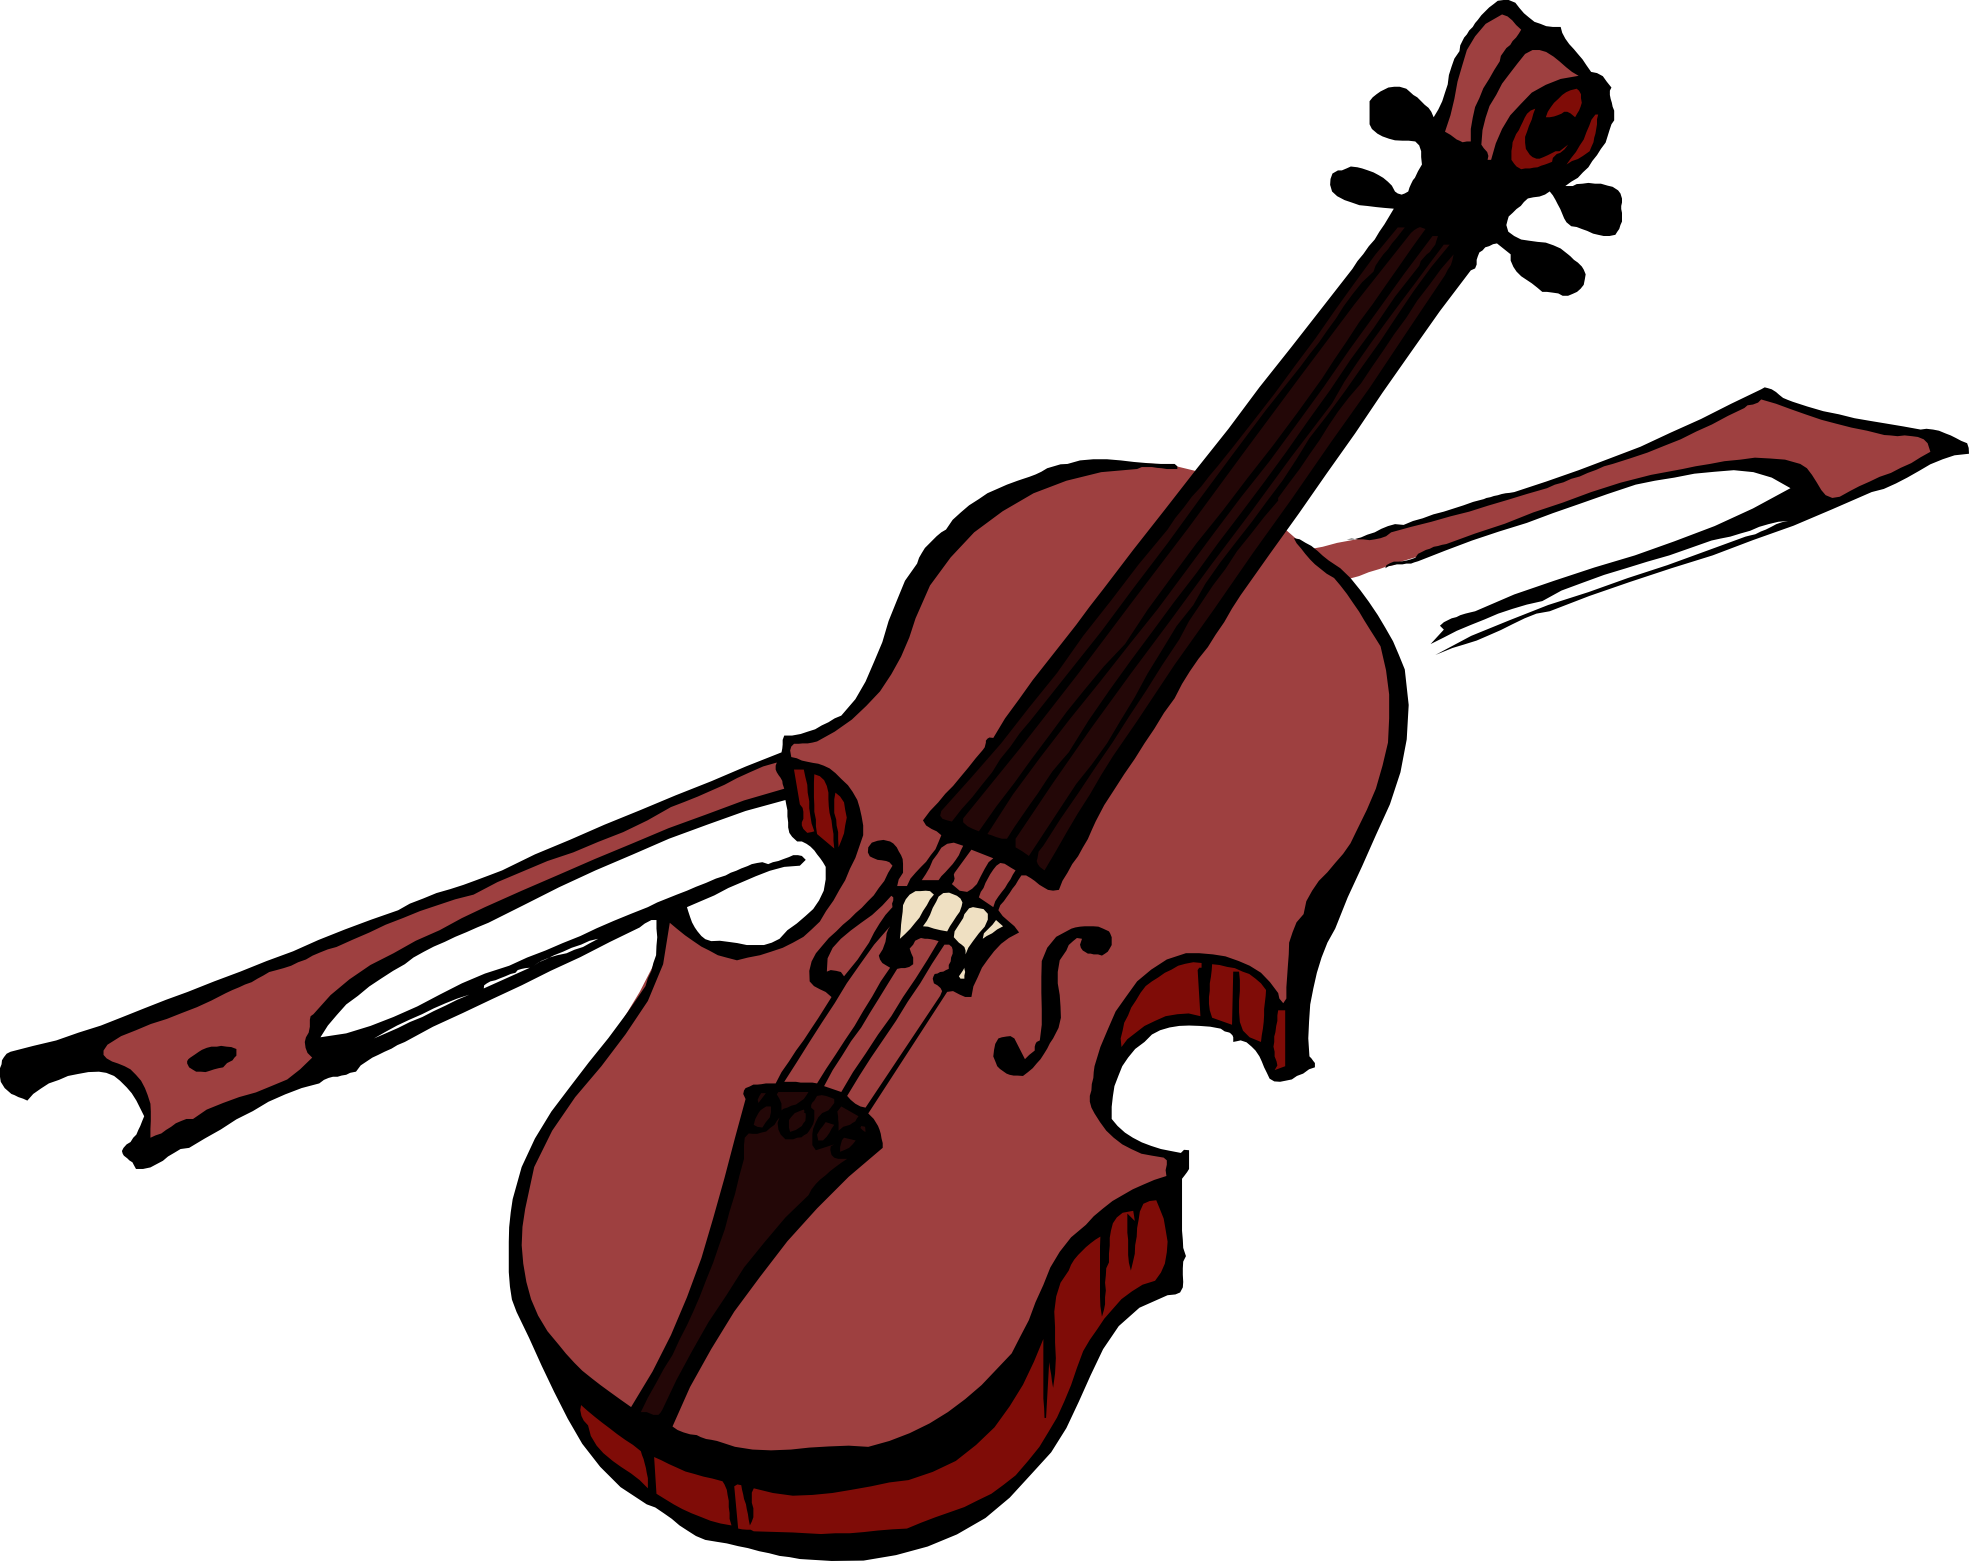 Orchestra Clipart | Free download best Orchestra Clipart on